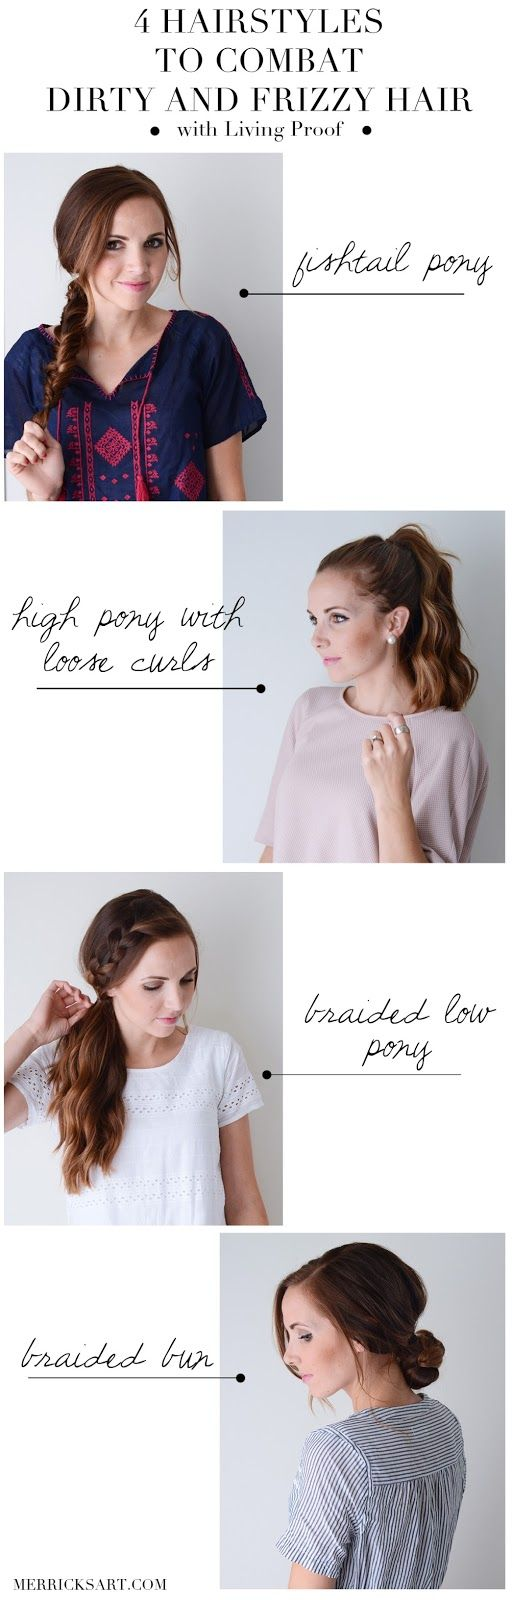 Outstanding 1000 Ideas About Hairstyles For Frizzy Hair On Pinterest Short Short Hairstyles Gunalazisus